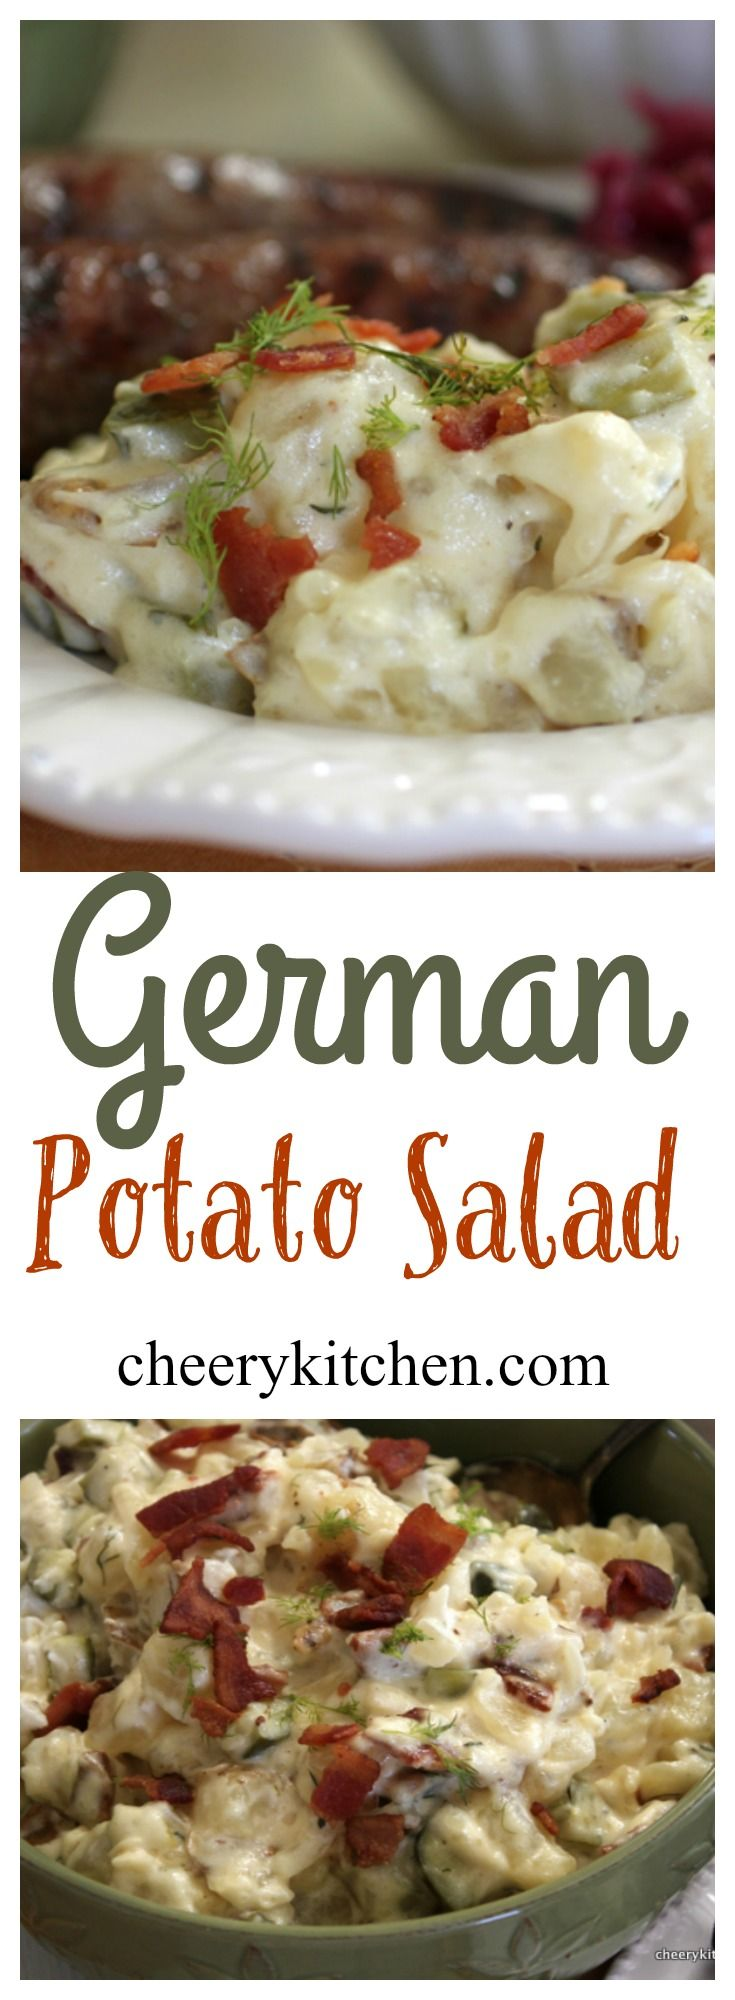 German Potato Salad, warm with a tangy dressing, dill pickles, and bacon, is traditionally served at Octoberfest with grilled Bratwurst and red cabbage.  It a delicious way to celebrate Fall harvest.  Give it a try!